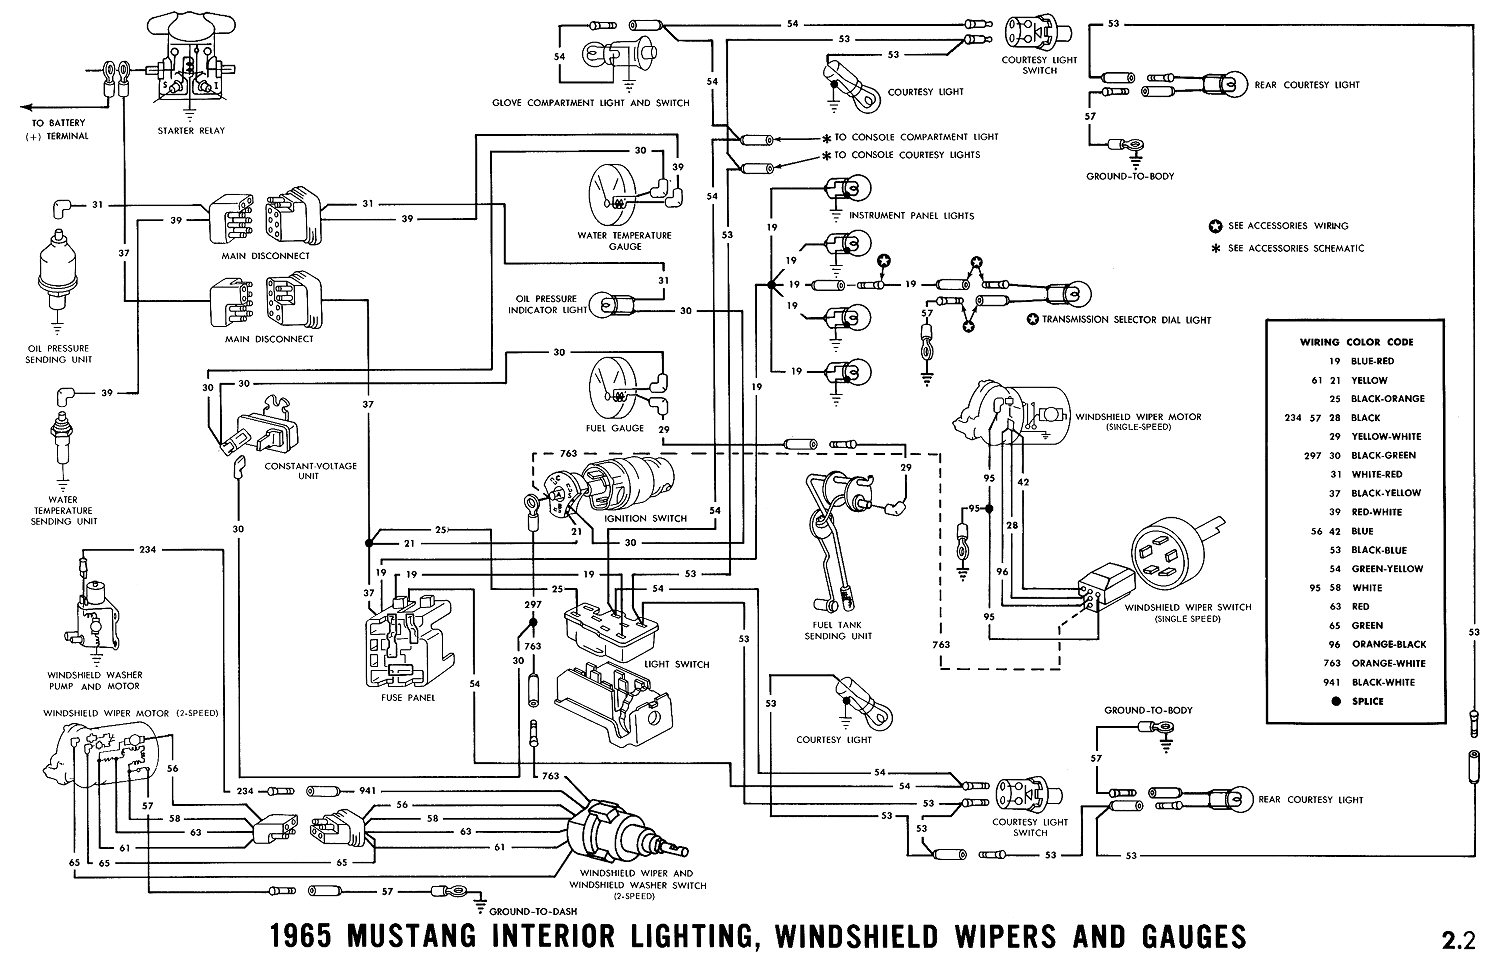 1967 Ford Mustang Shelby Wiring Diagram Manual Electrical Diagrams Corvette Dash Schematic 1966 V8 Schematics 1972 Ranchero